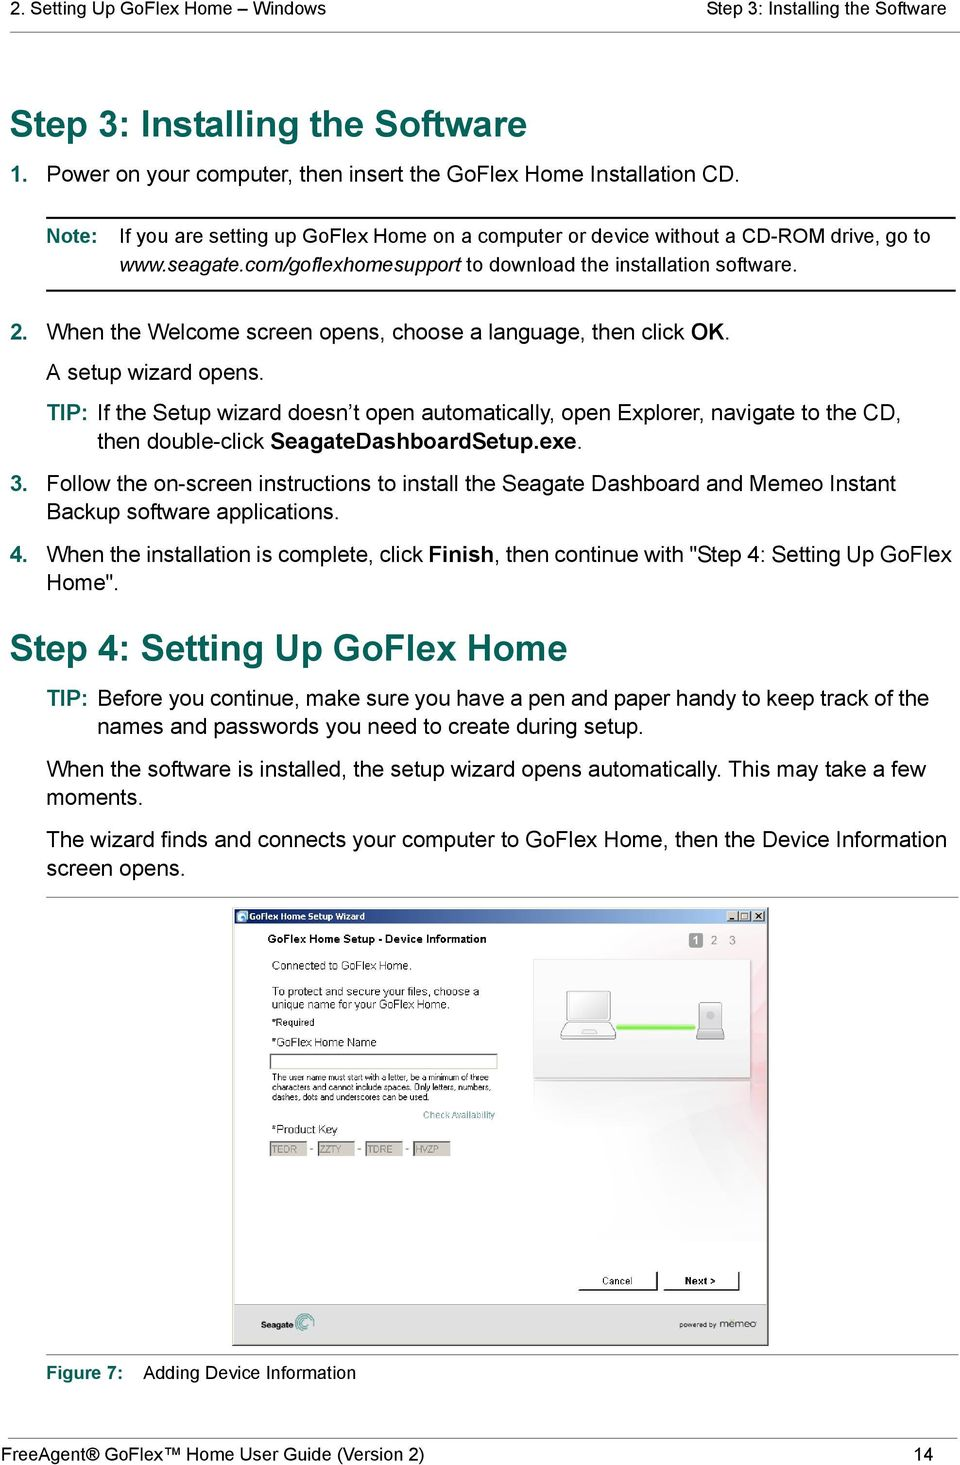 Seagate goflex desk manual.